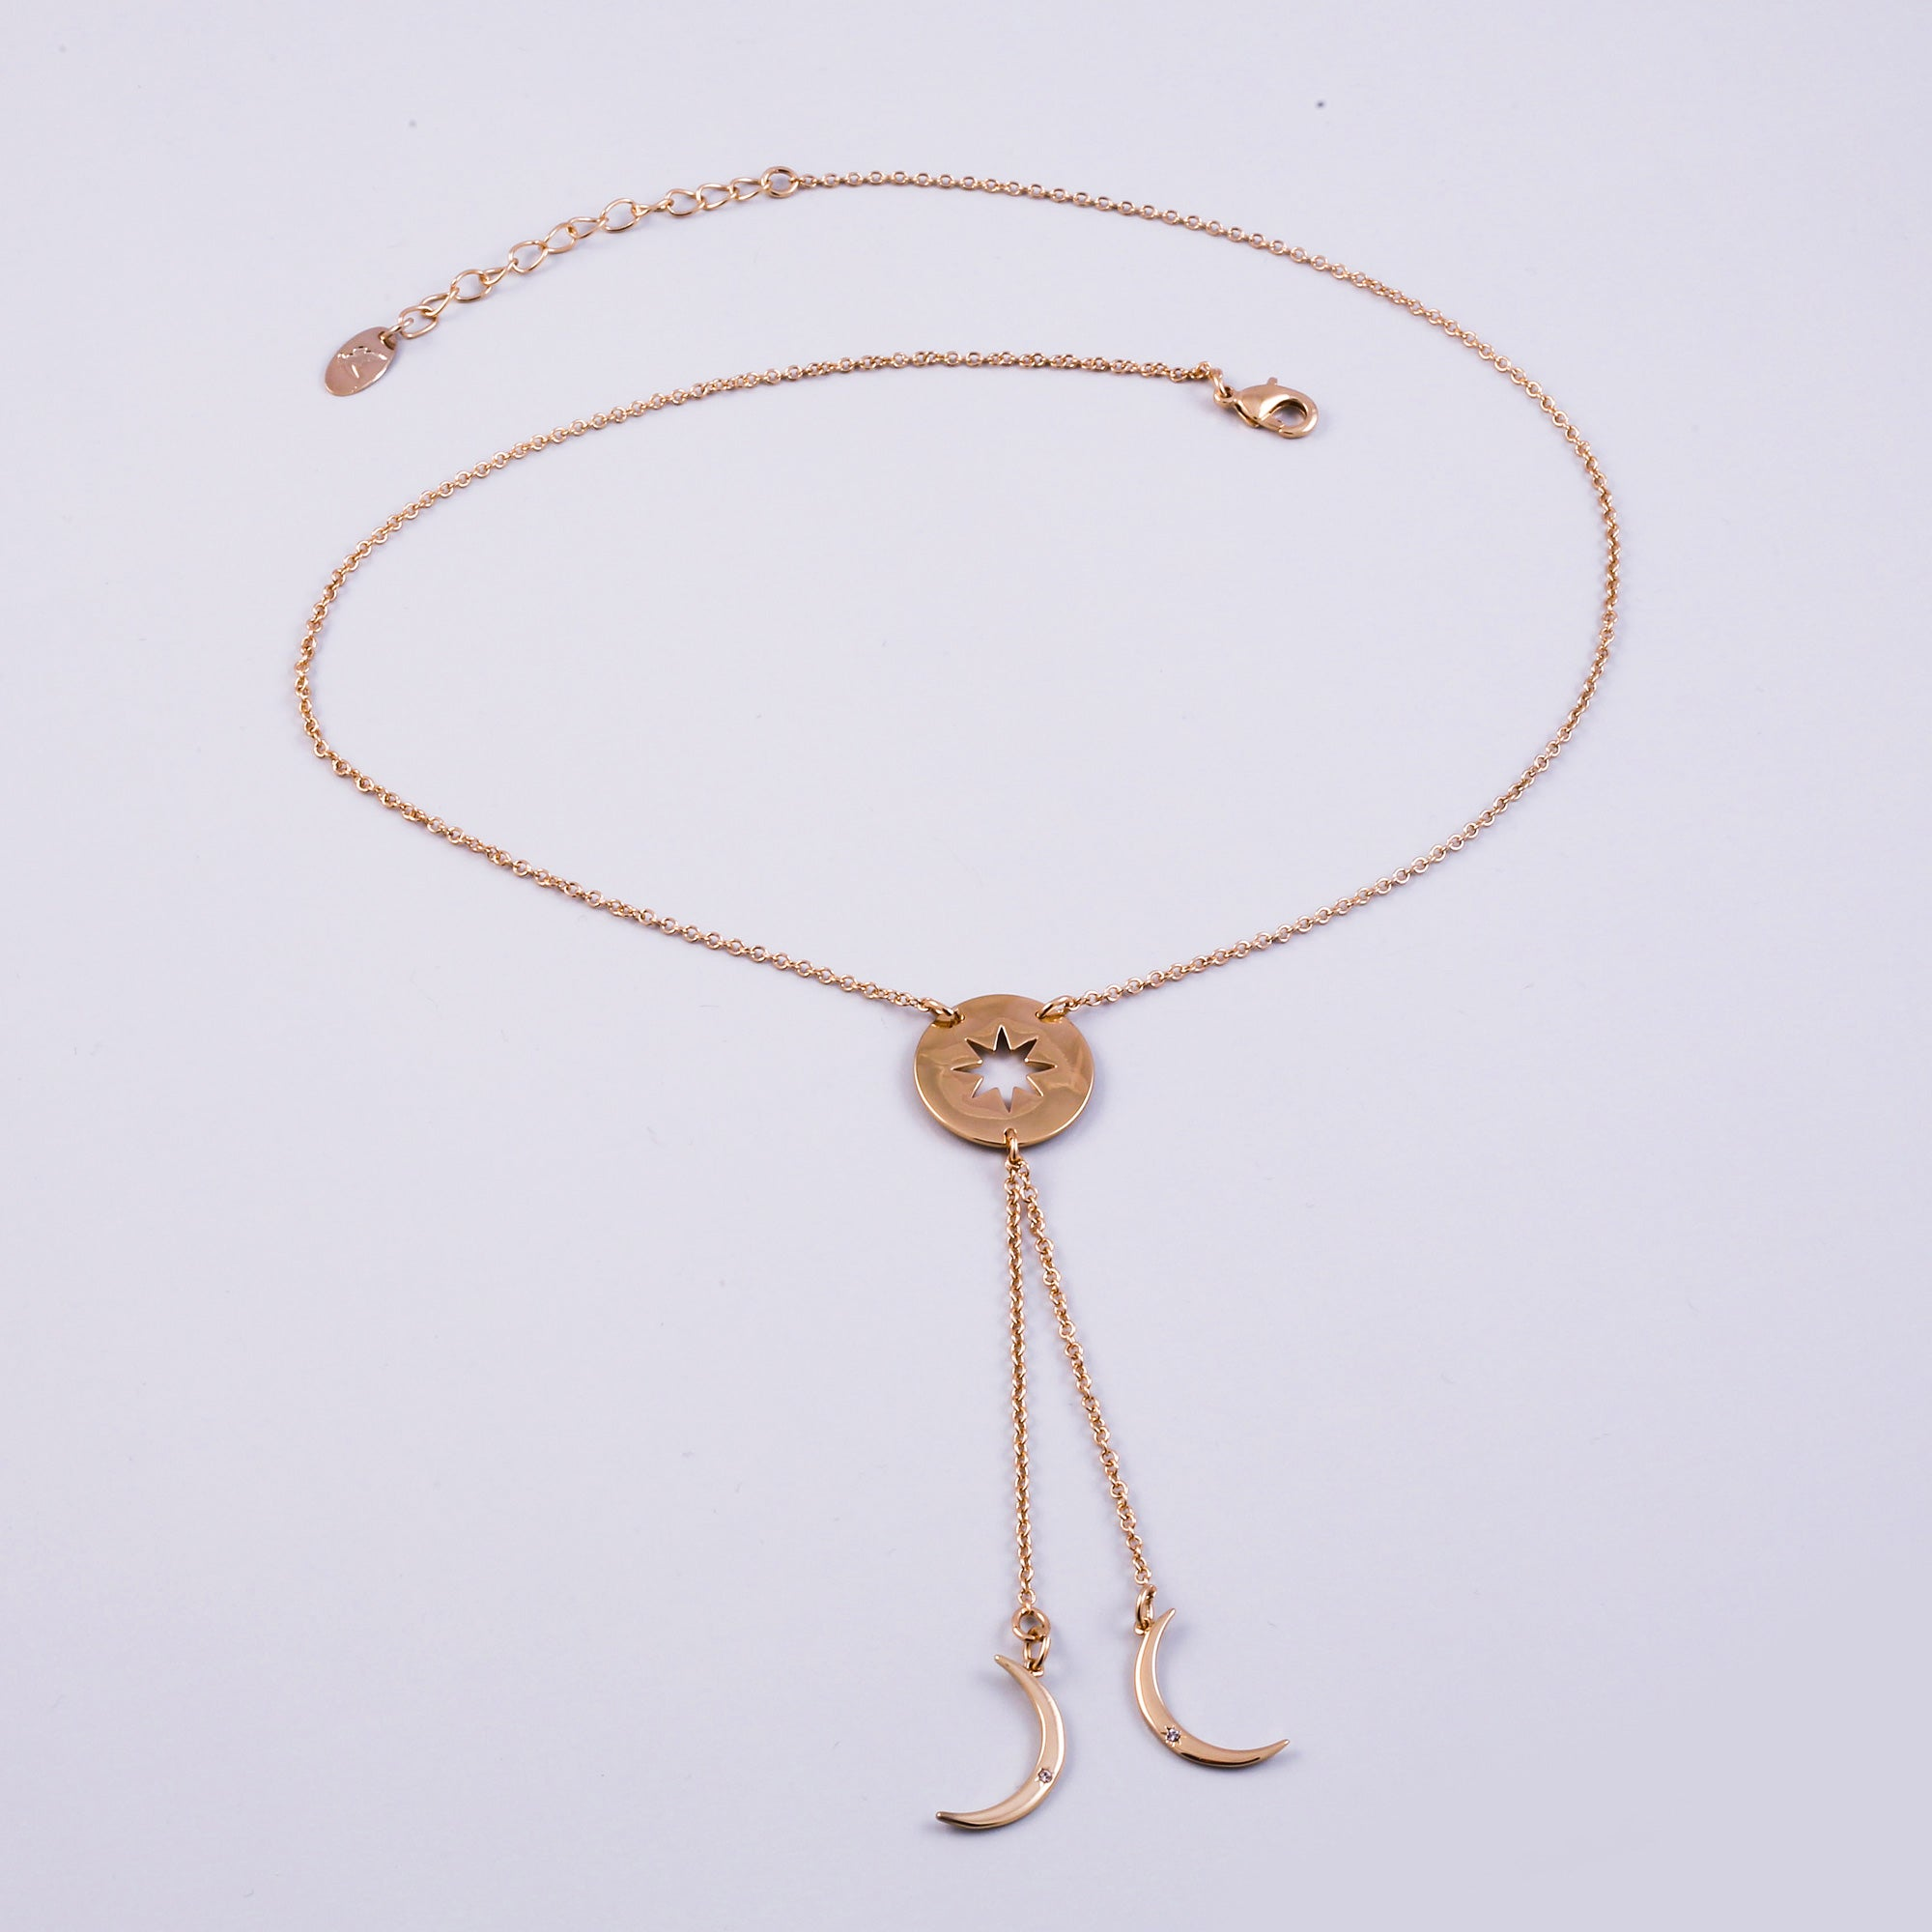 Gold Triple Moon Goddess Moon Lariat Necklace